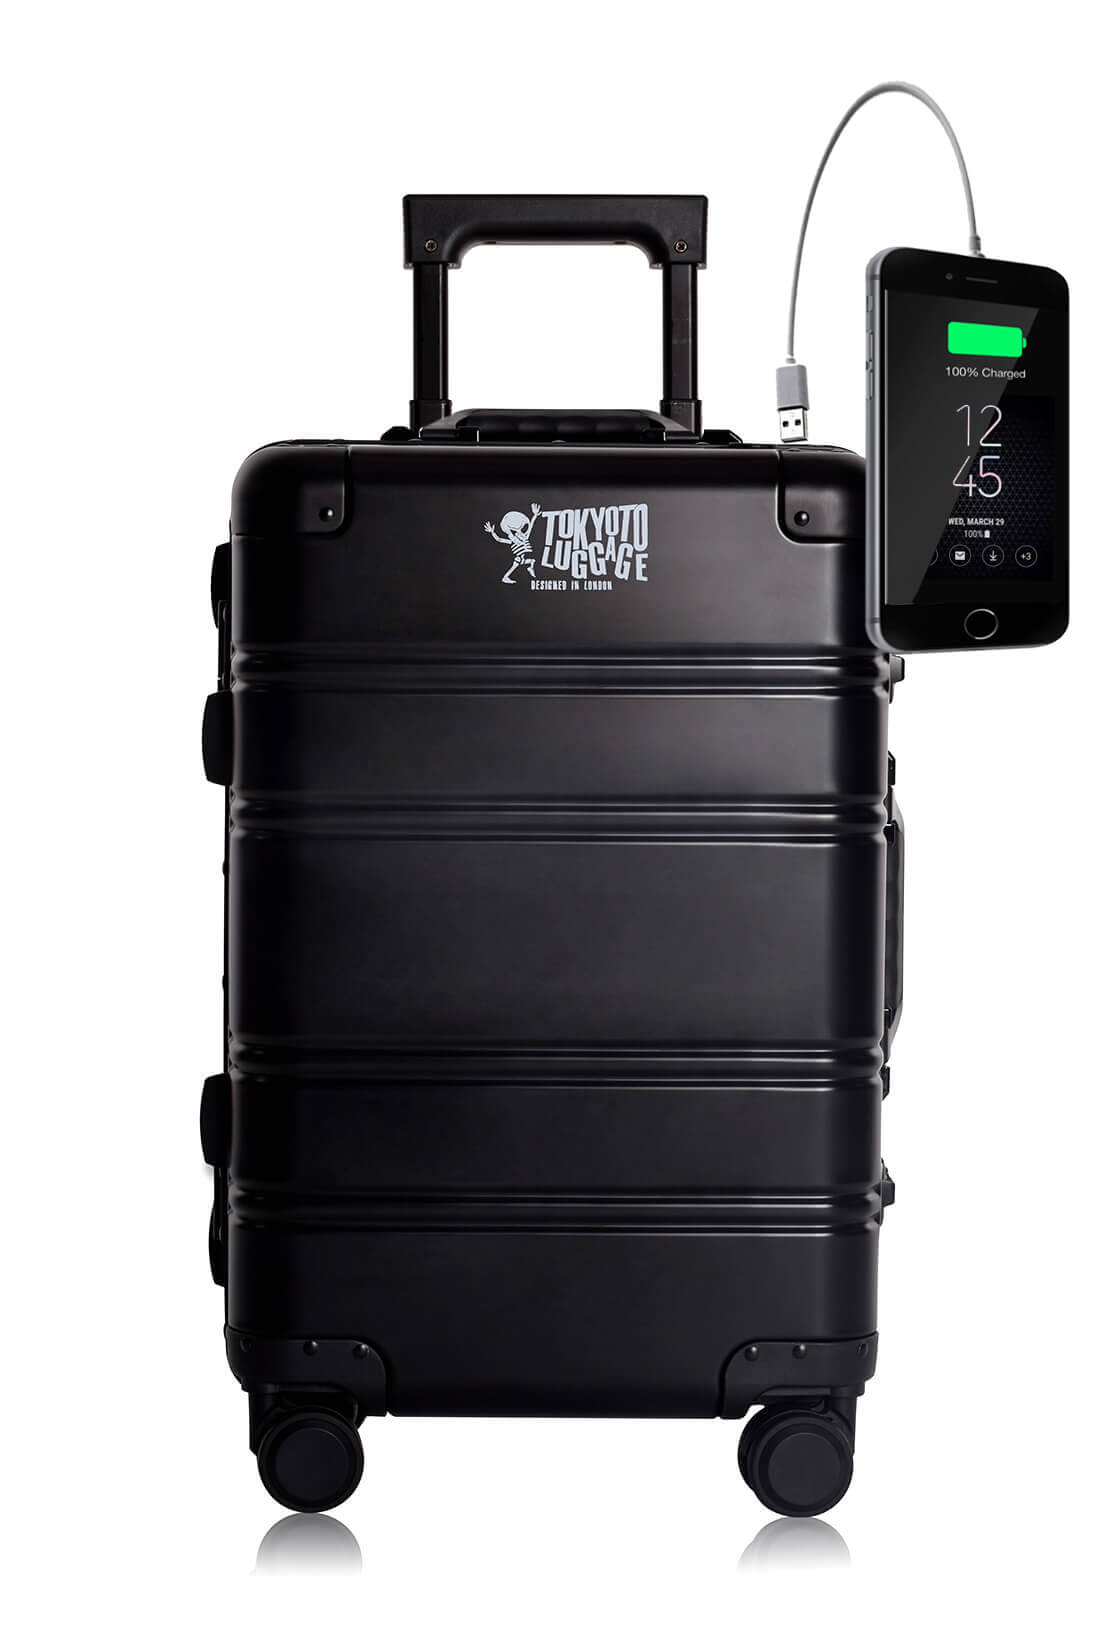 Full Aluminum Suitcase Cabin Size Carry-on Luggage Trolley BLACK LOGO